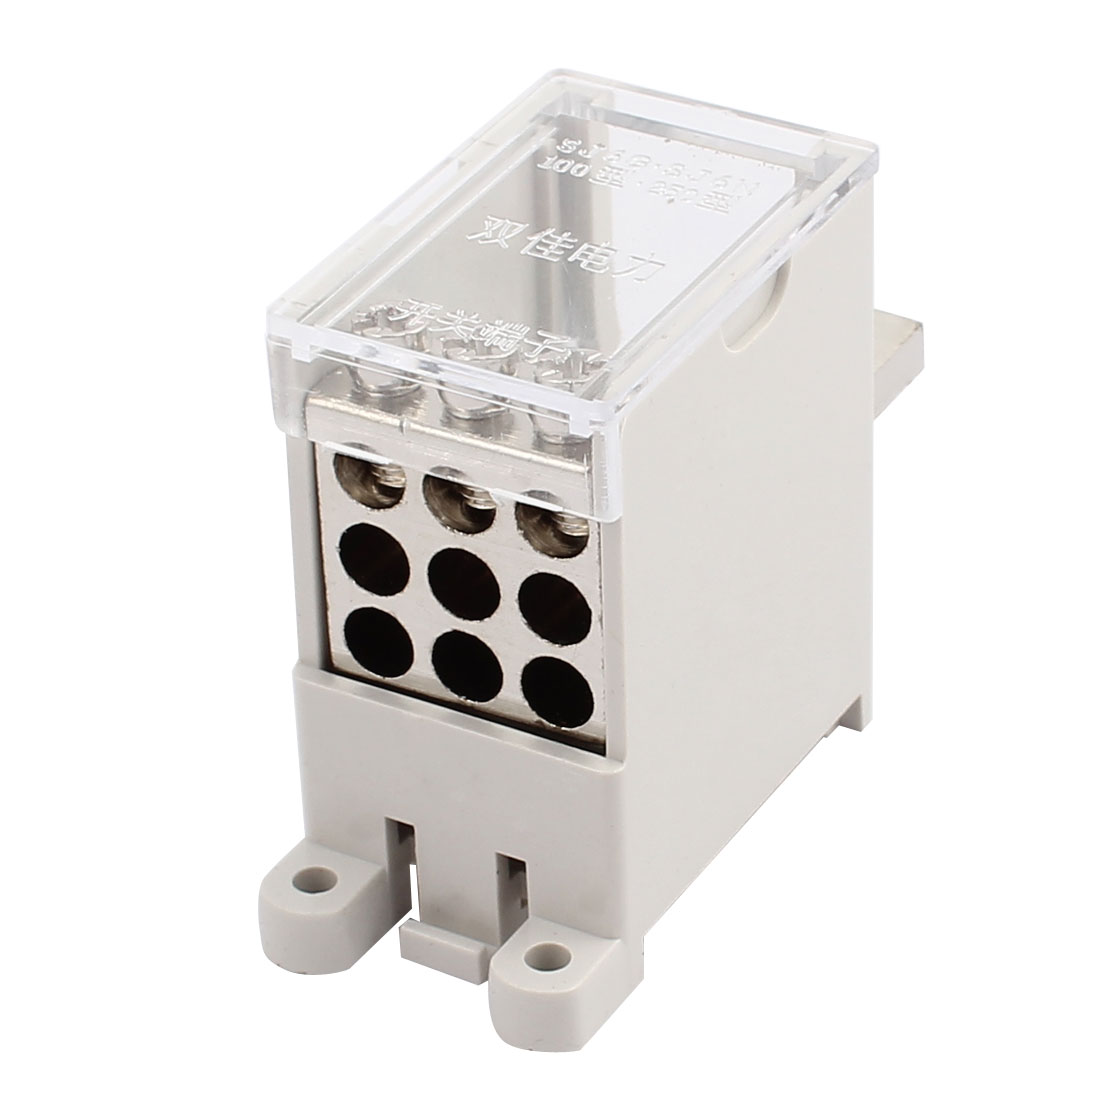 100-Type Wire Terminal Block 1 Inlet 9 Outlet for Miniature Circuit Breakers